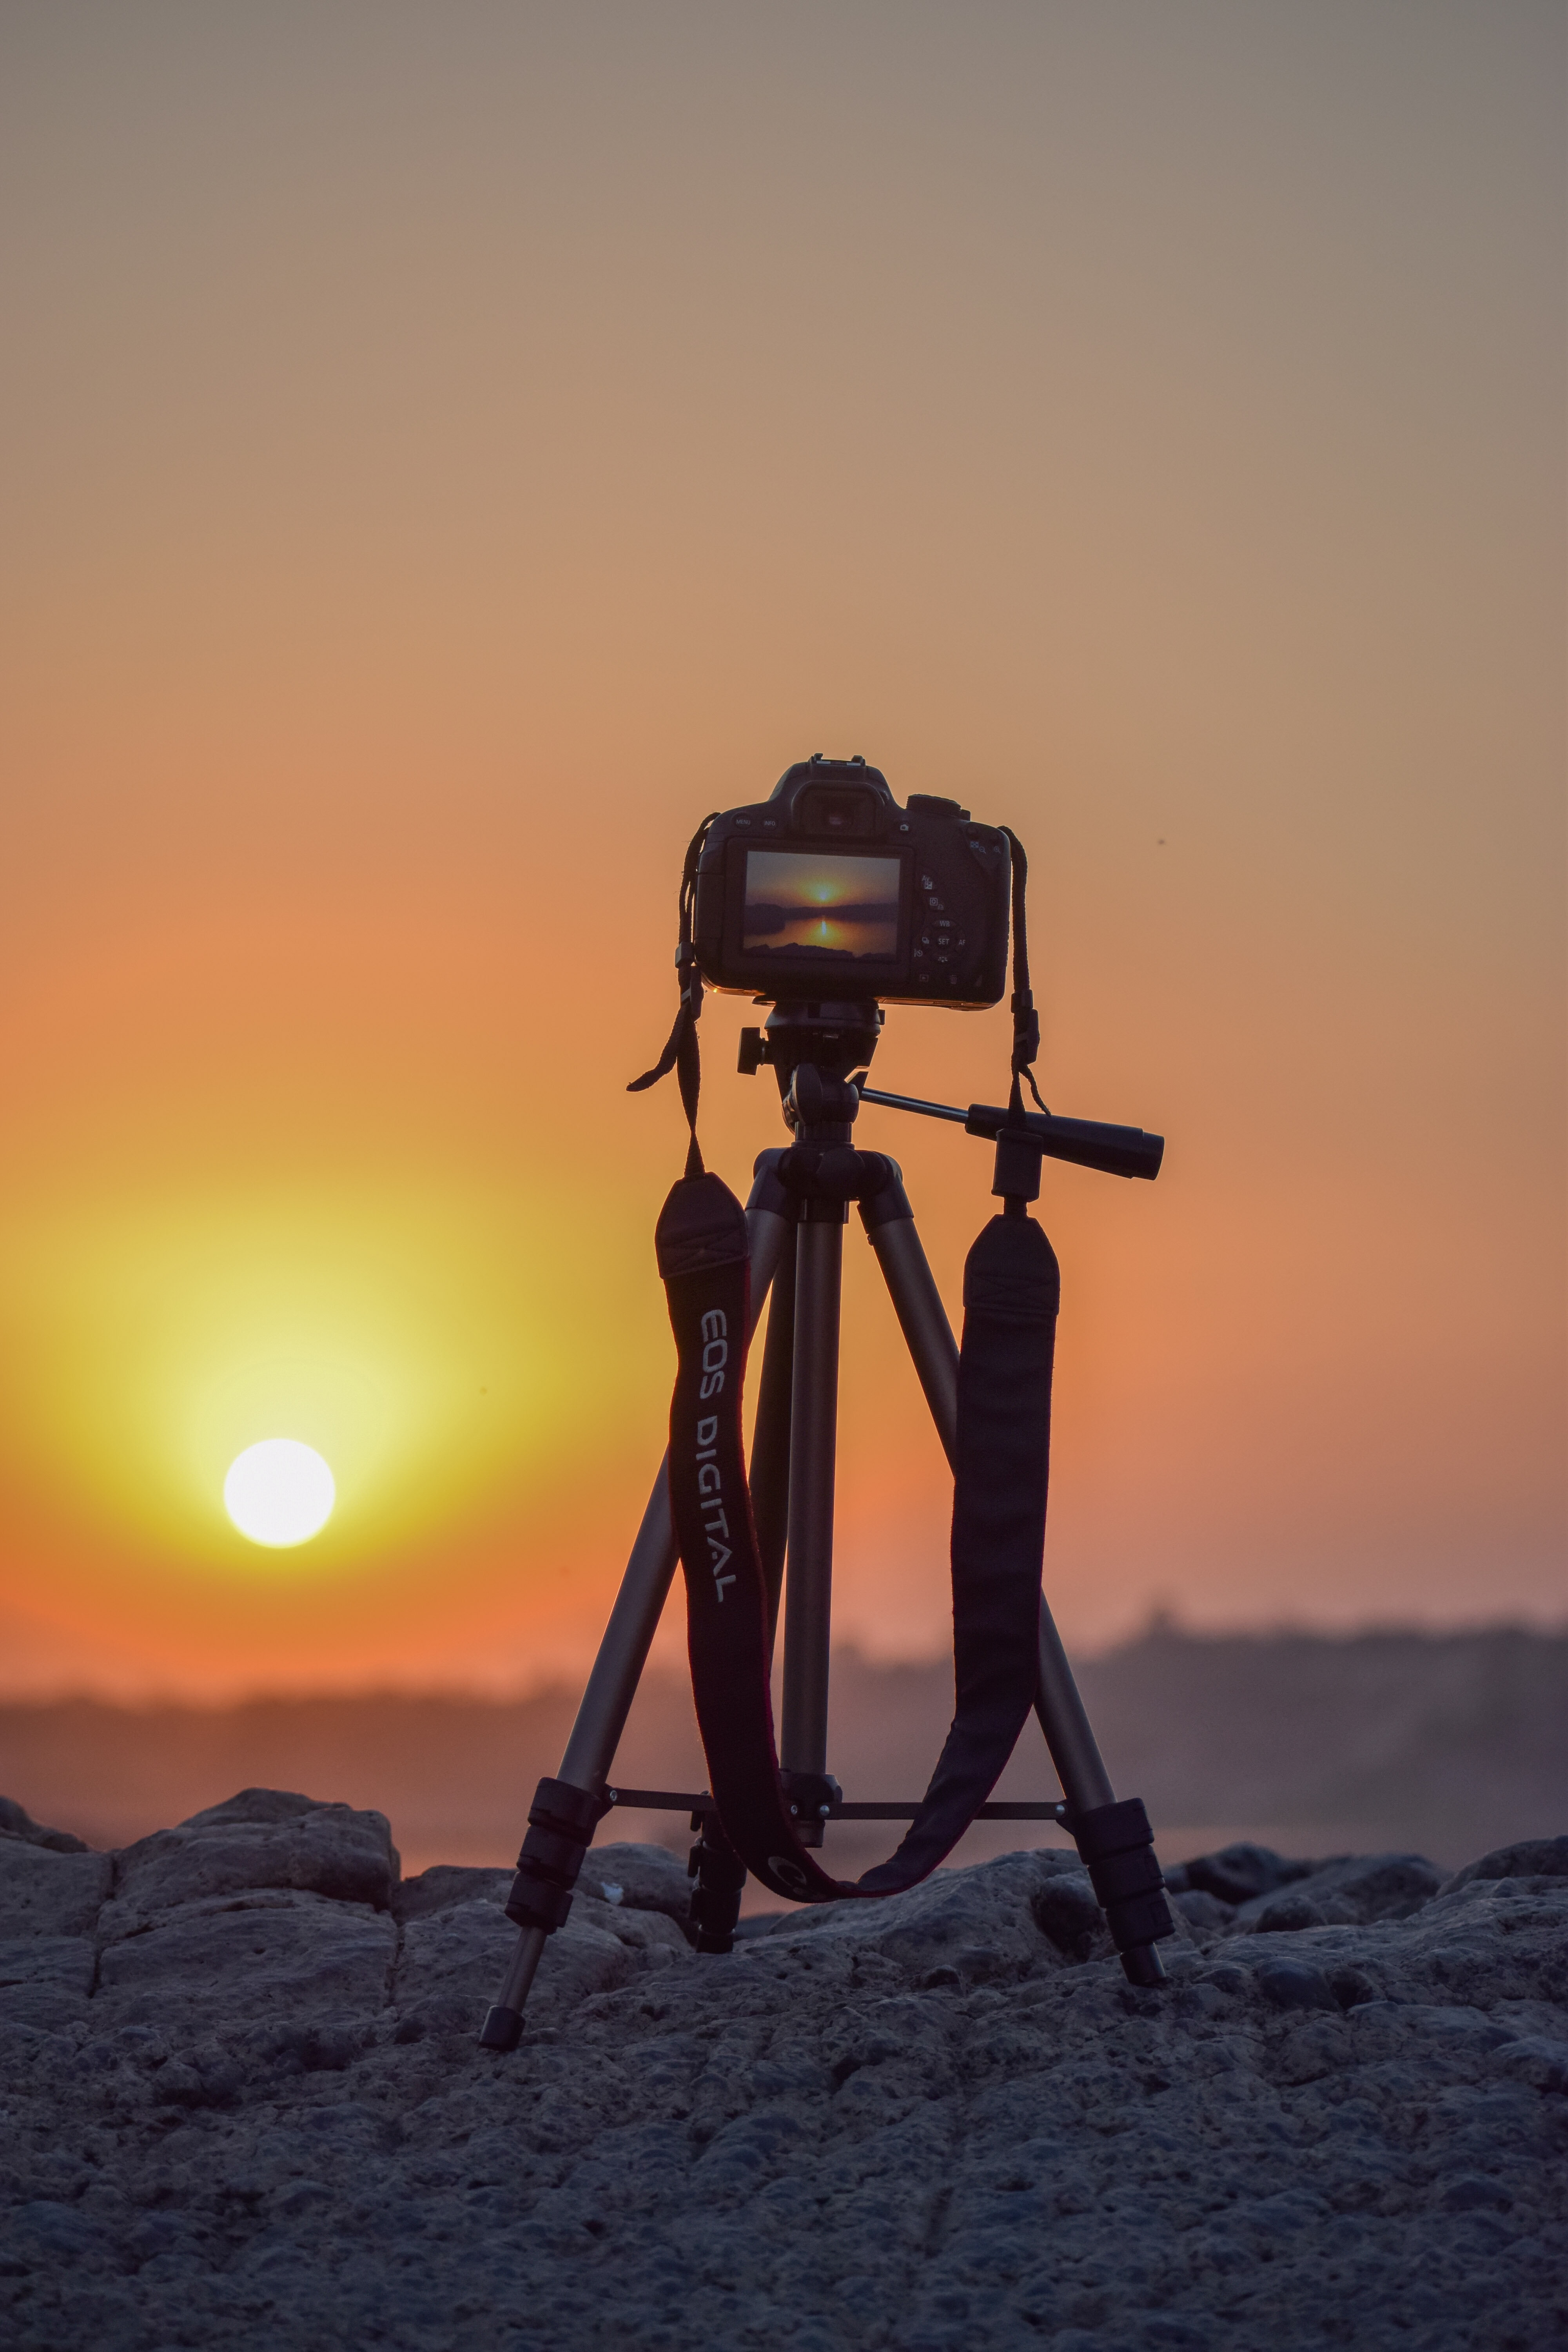 Image of a camera on a tripod in front of a sunset.